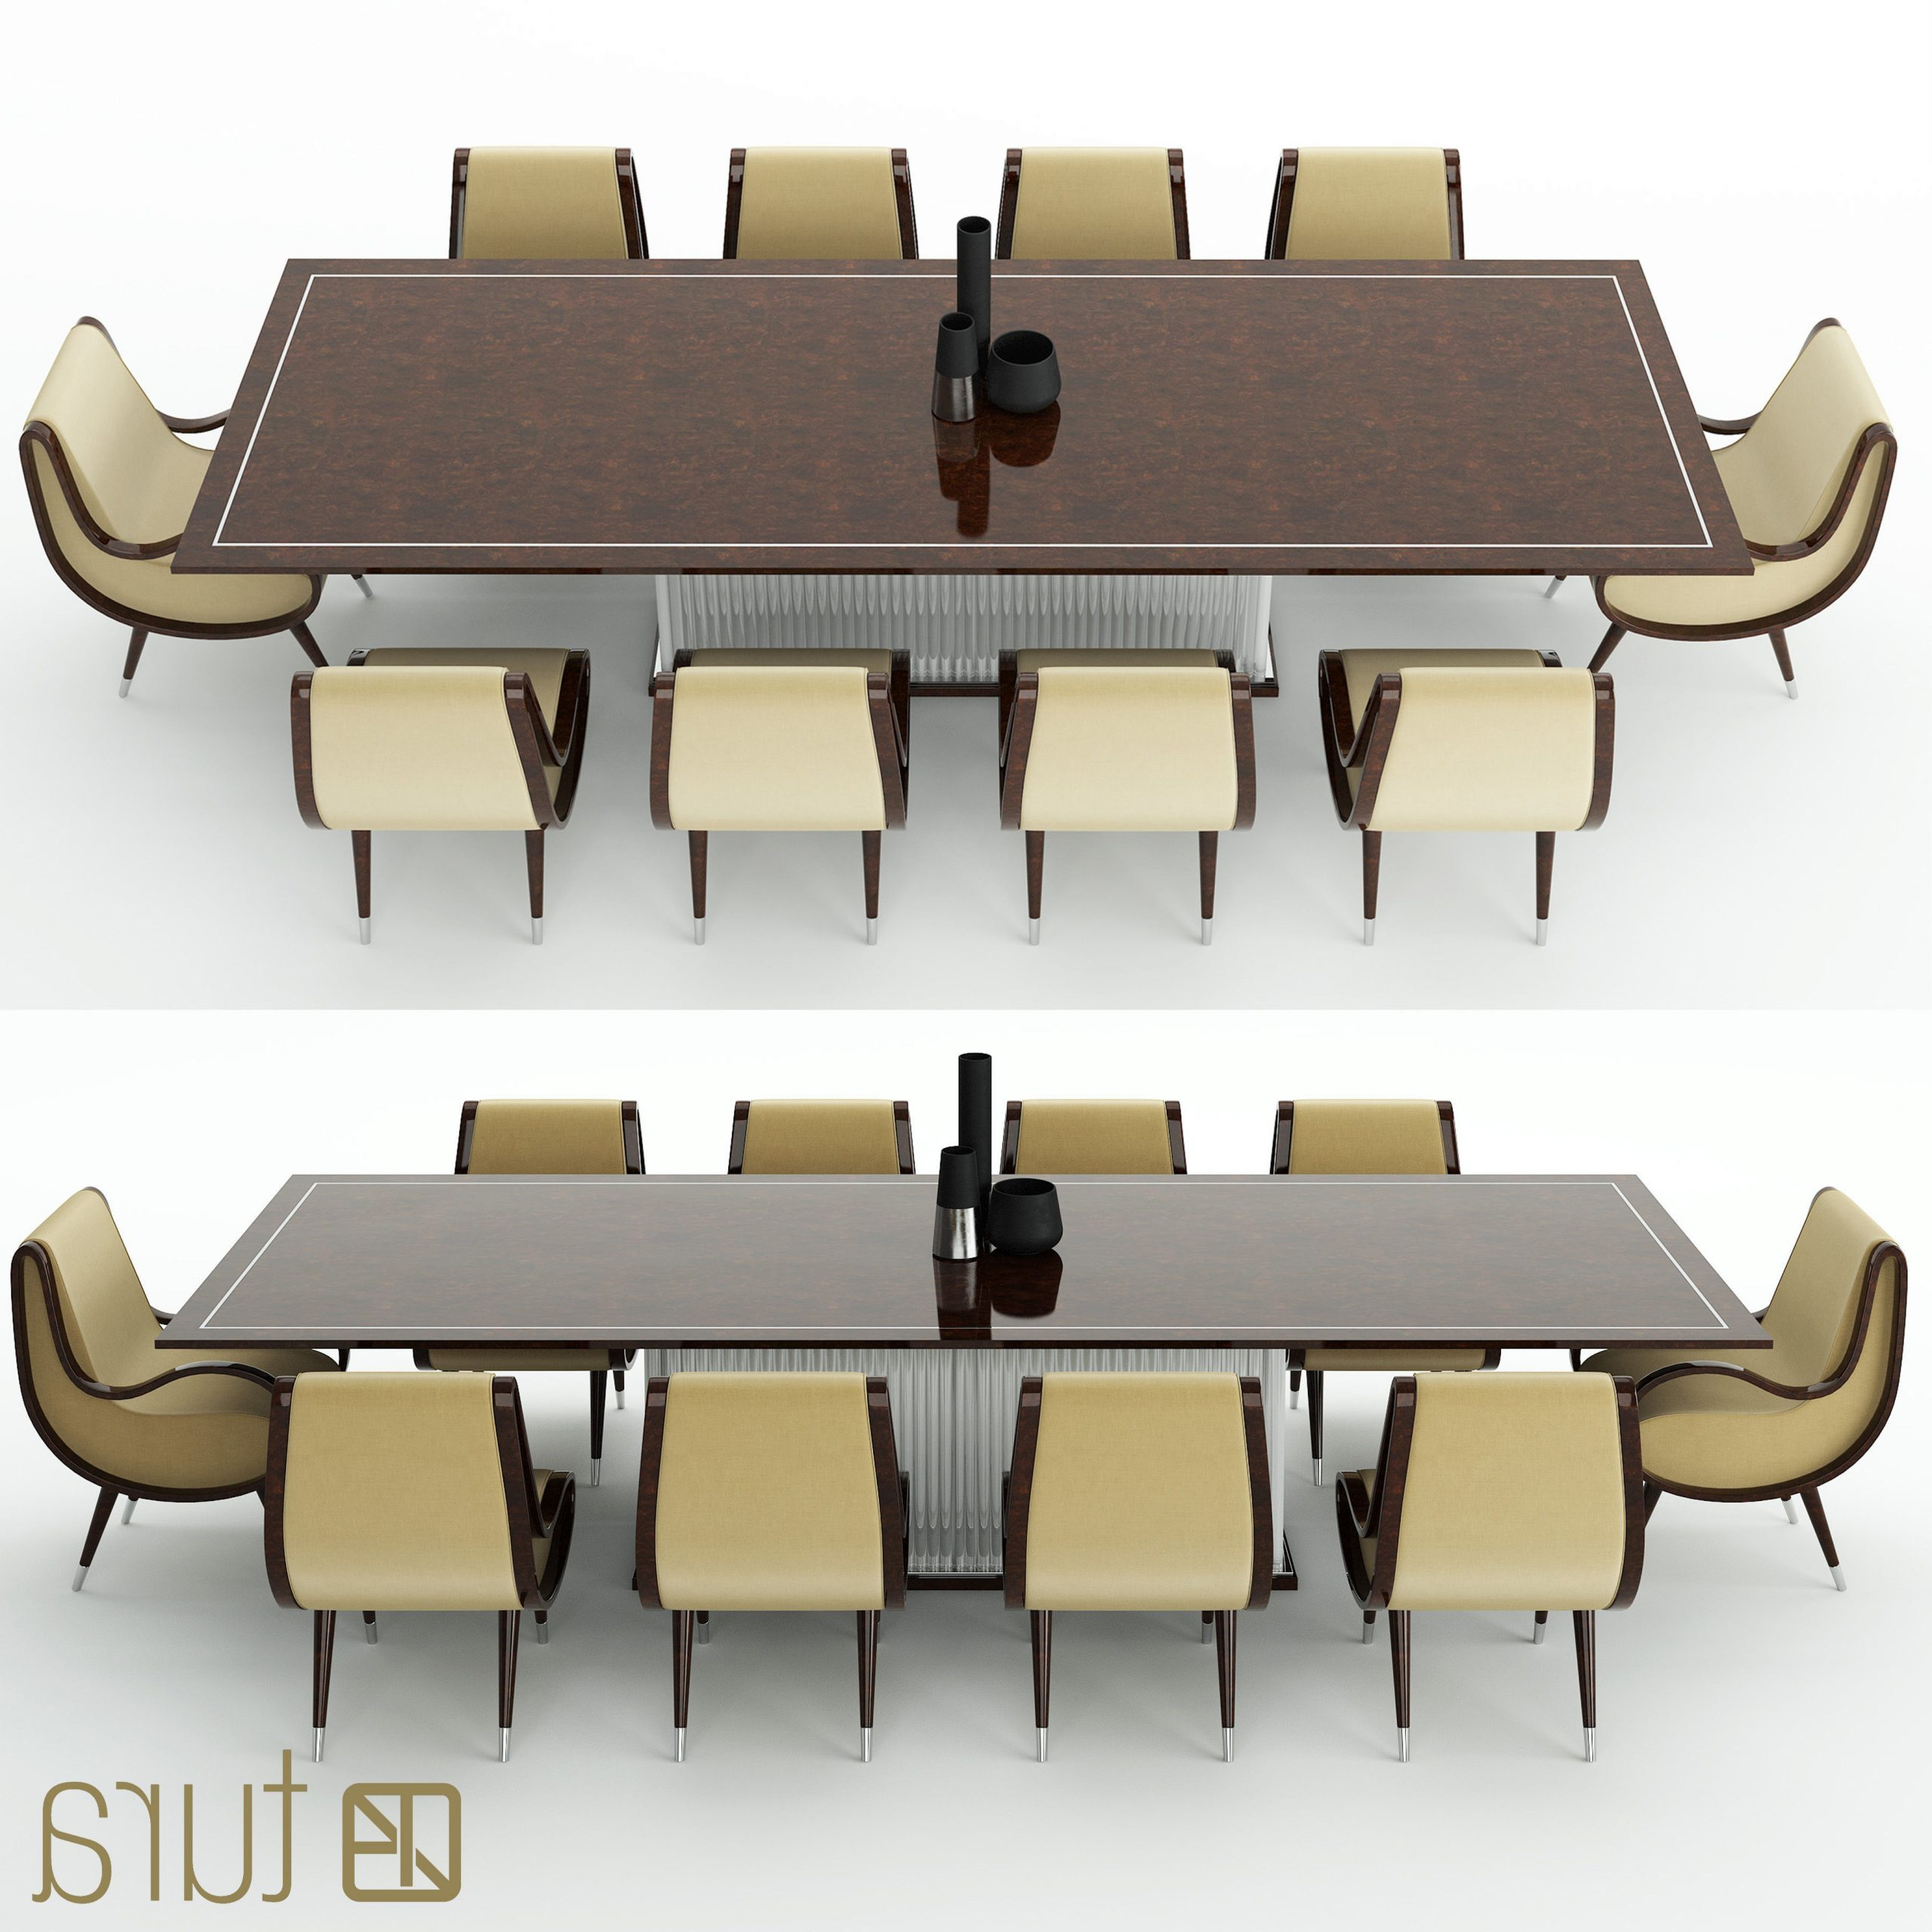 3d Model Pertaining To Eclipse Dining Tables (View 20 of 30)